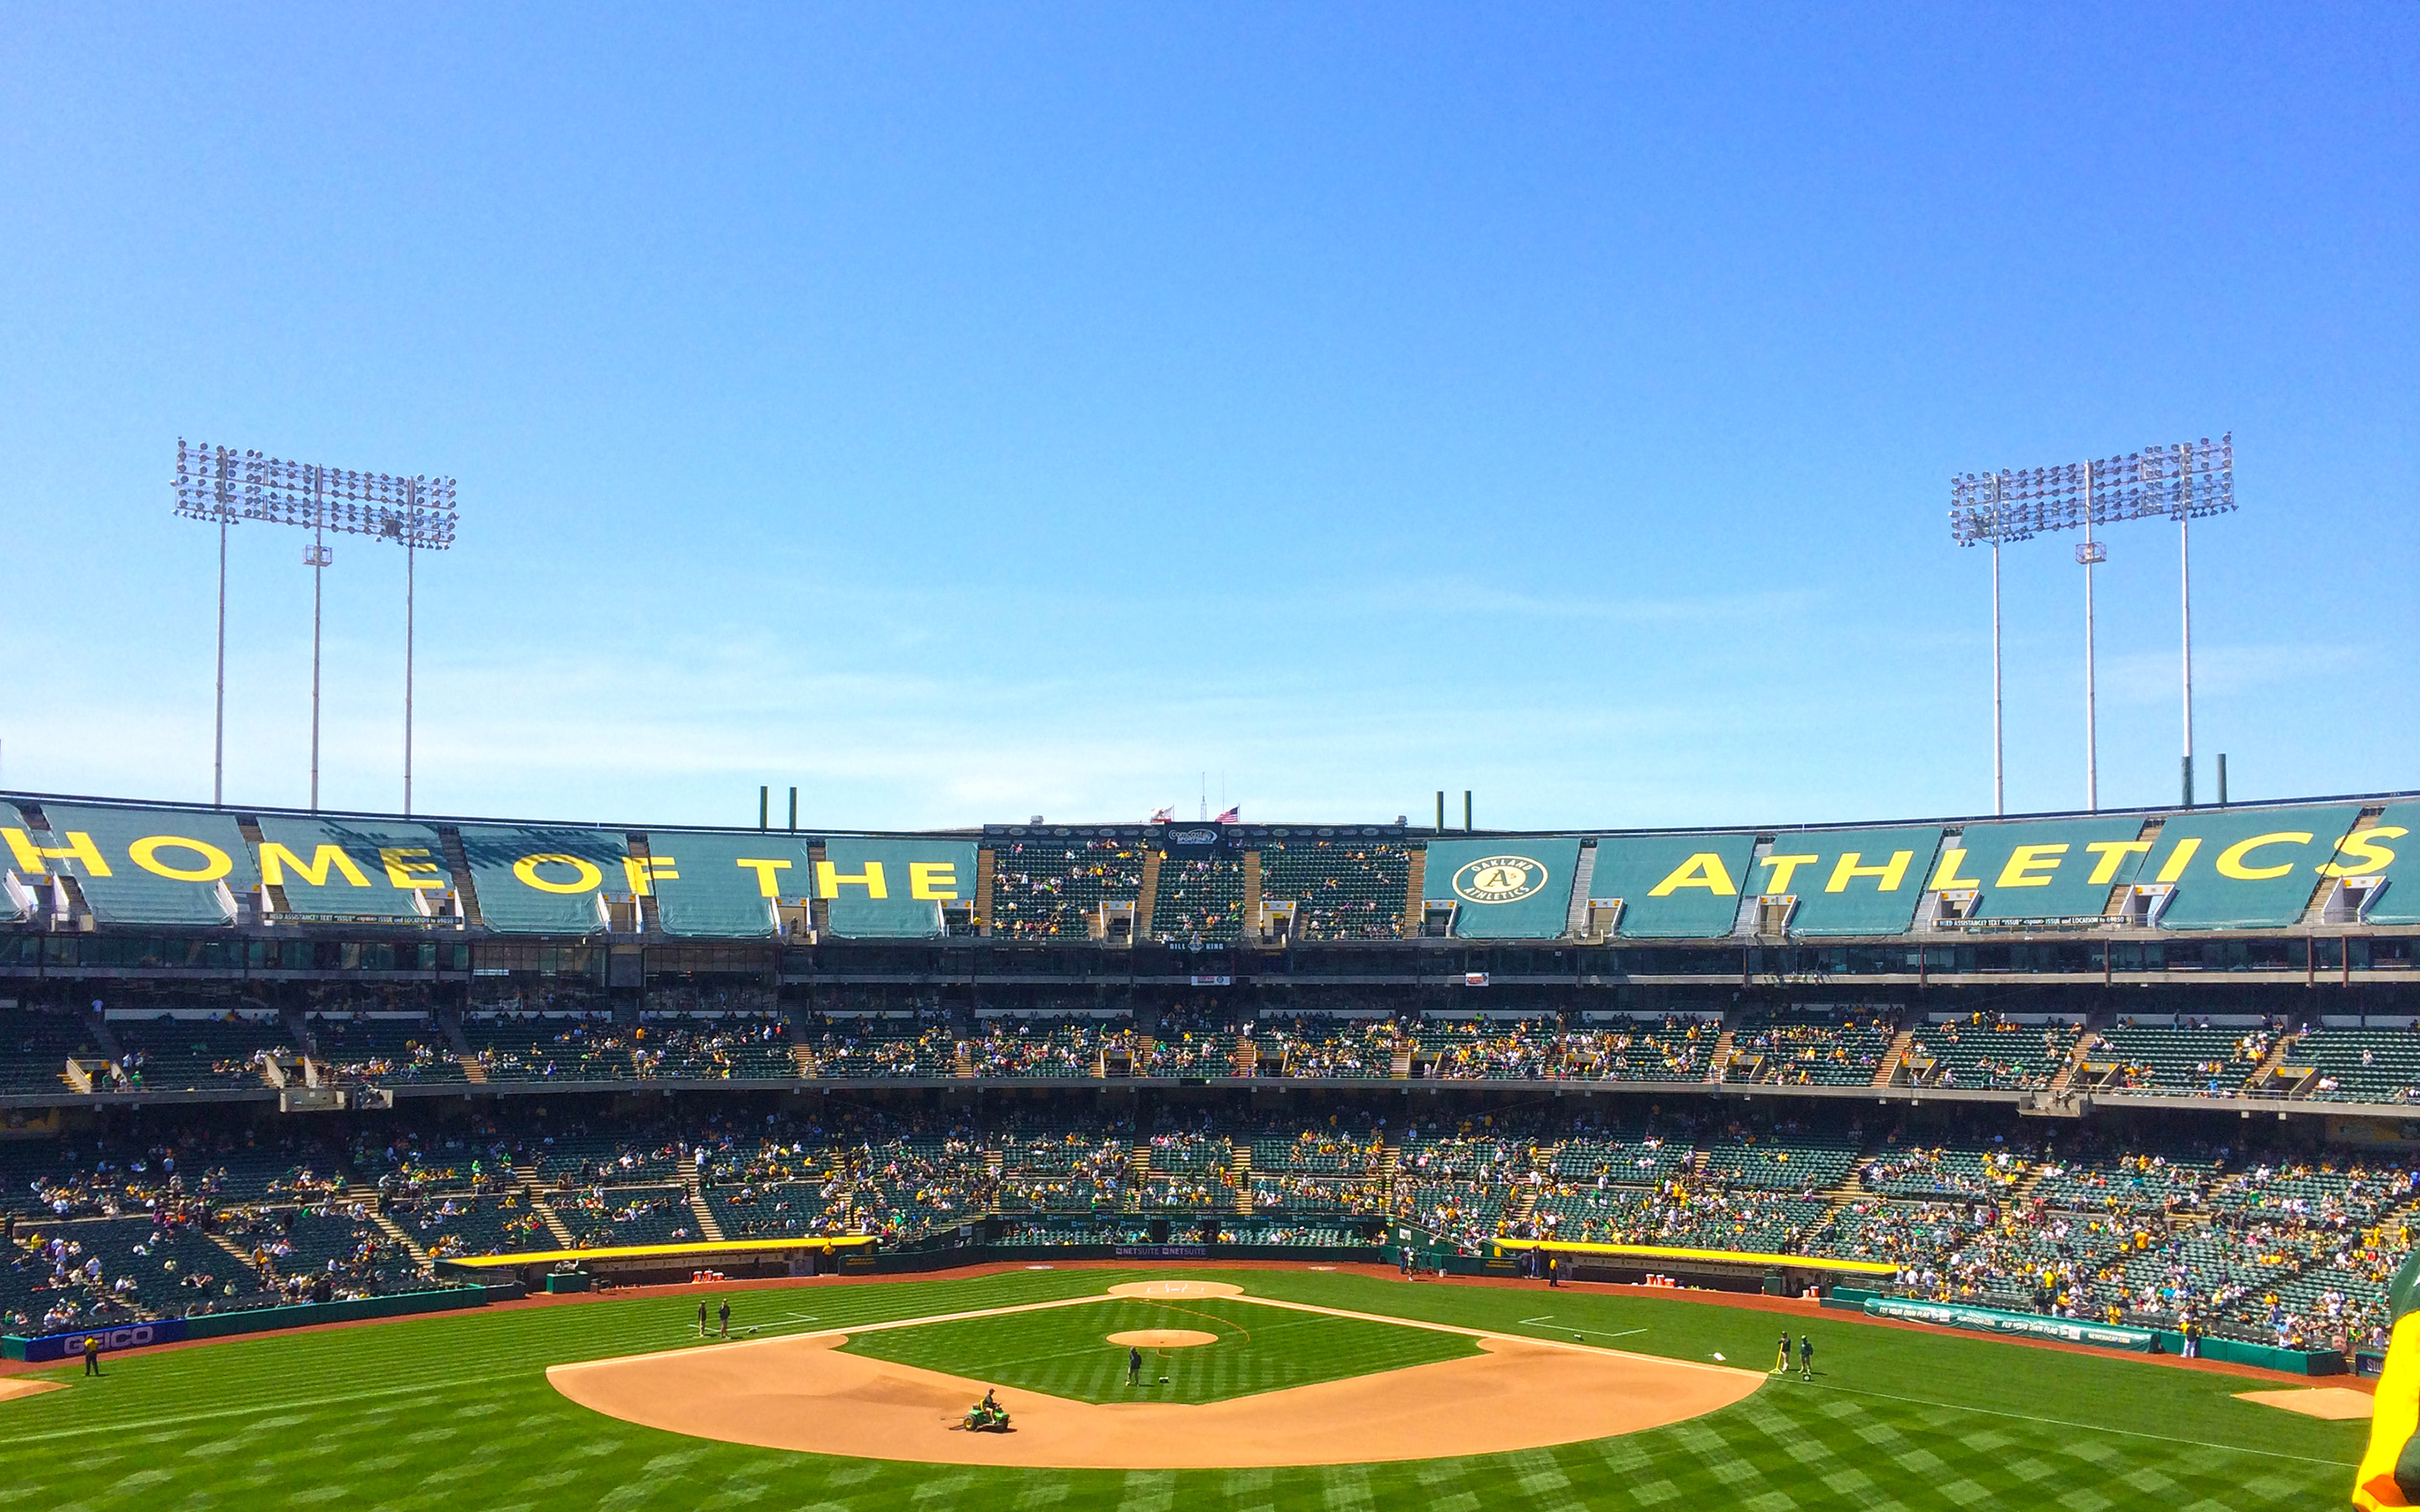 2880x1800 - Oakland Athletics Wallpapers 17